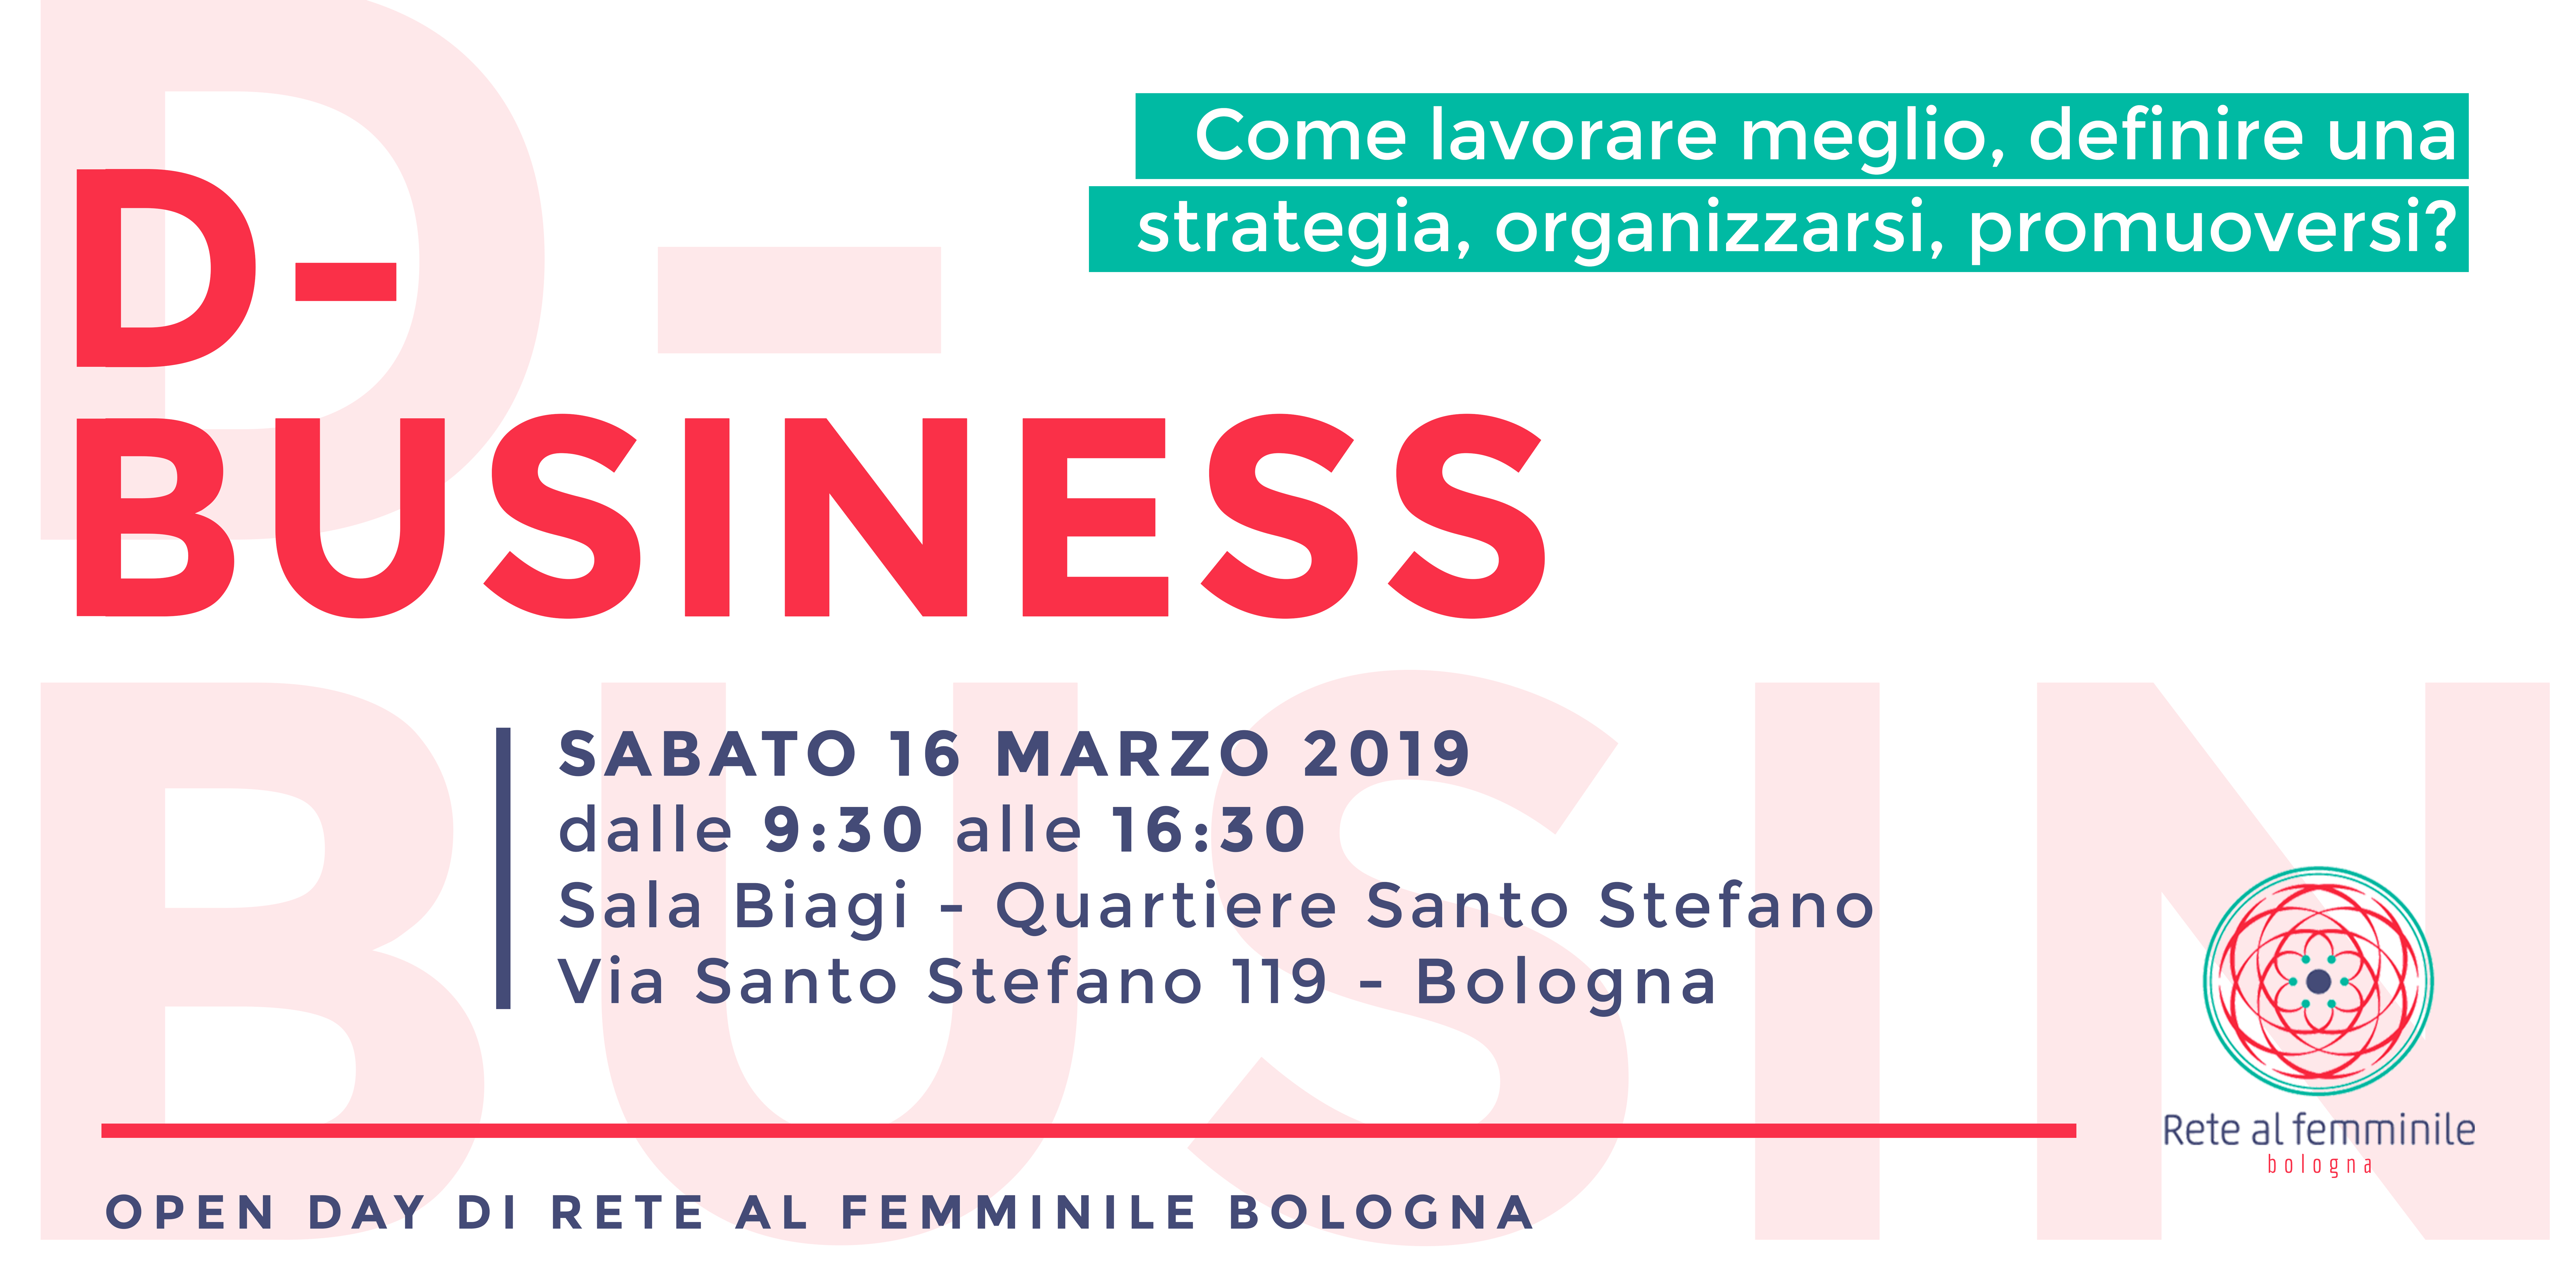 Open day D-Business